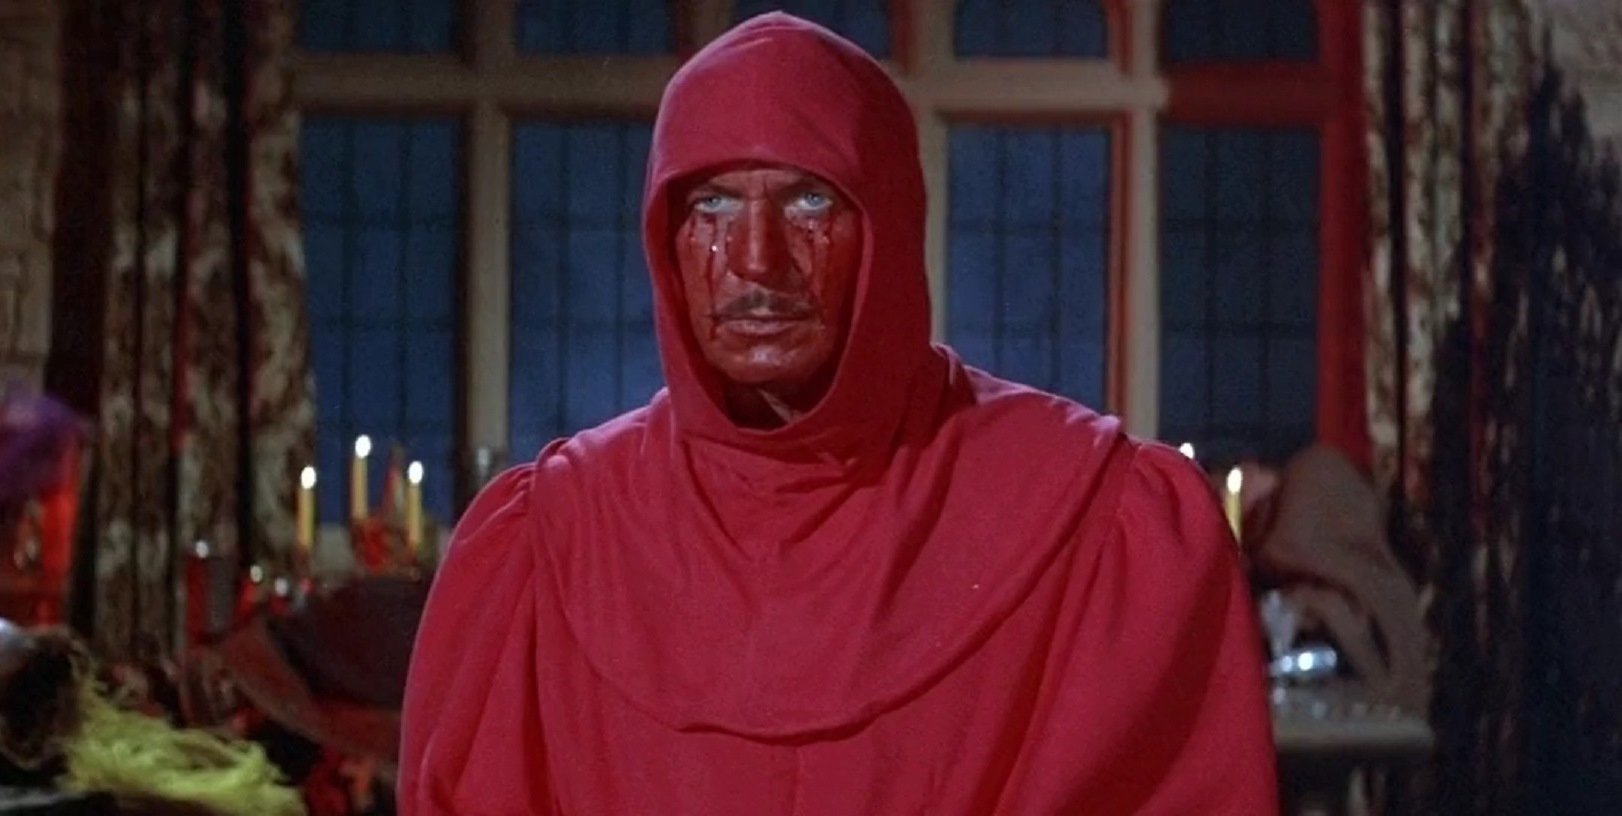 The Red Death (Vincent Price) in The Masque of the Red Death (1964)